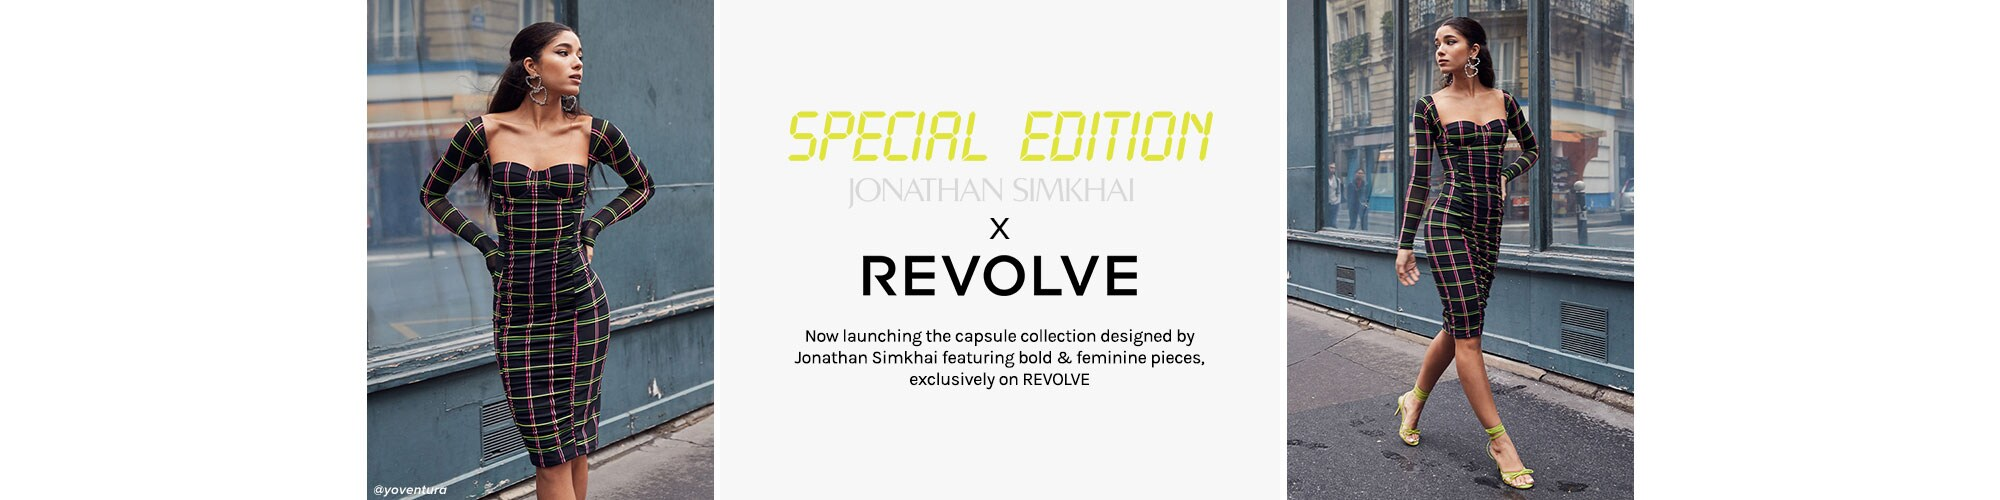 JONATHAN SIMKHAI x REVOLVE. Now launching the capsule collection designed by Jonathan Simkhai featuring bold & feminine pieces, exclusively on REVOLVE. Shop The Collection